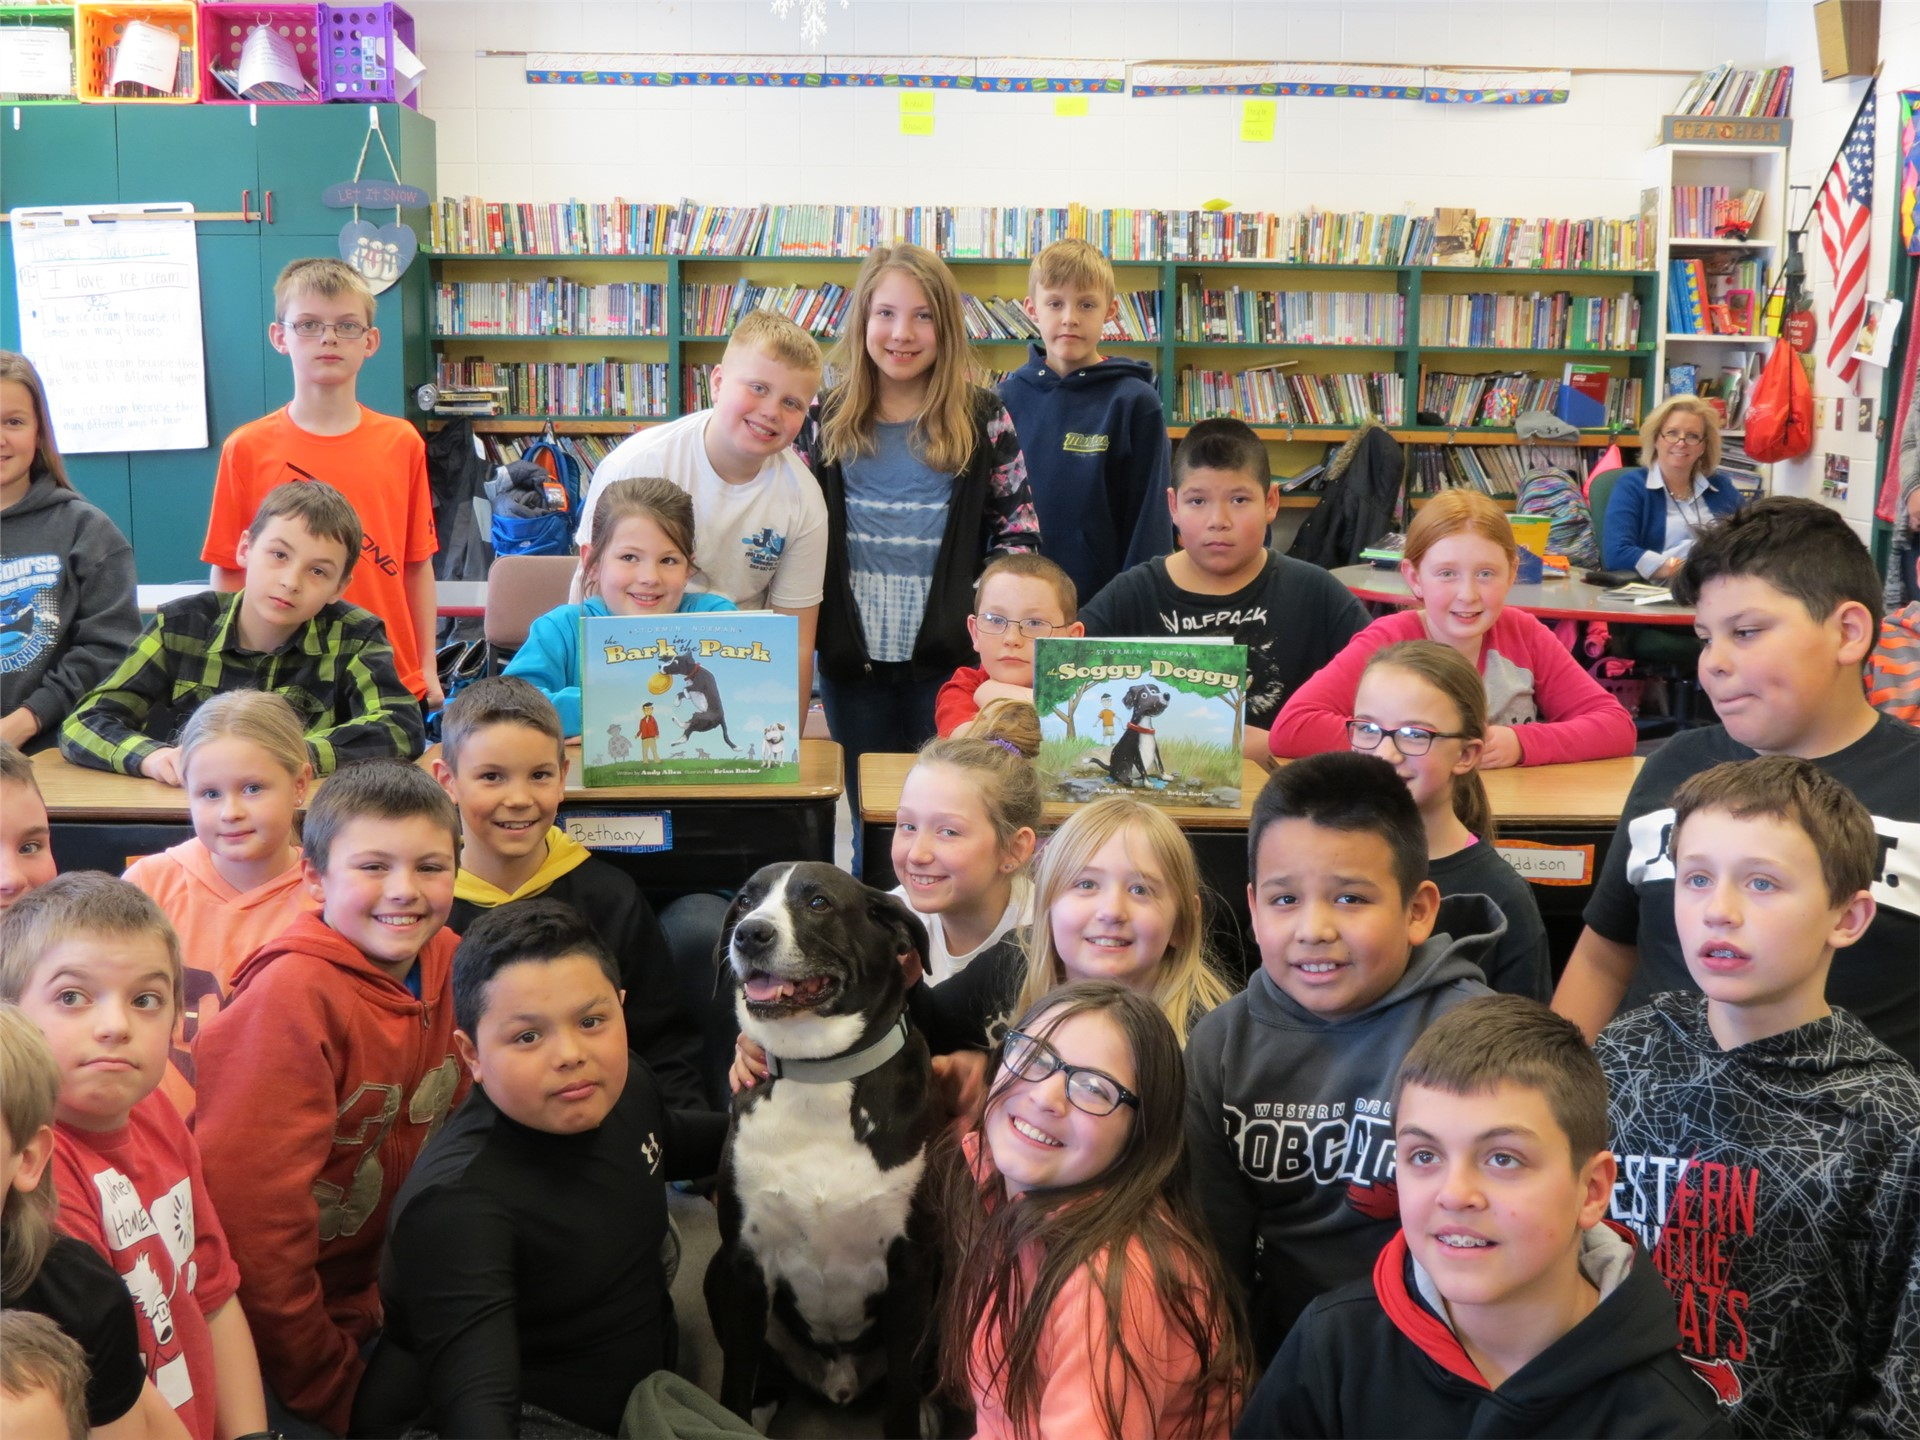 Students with dog from author